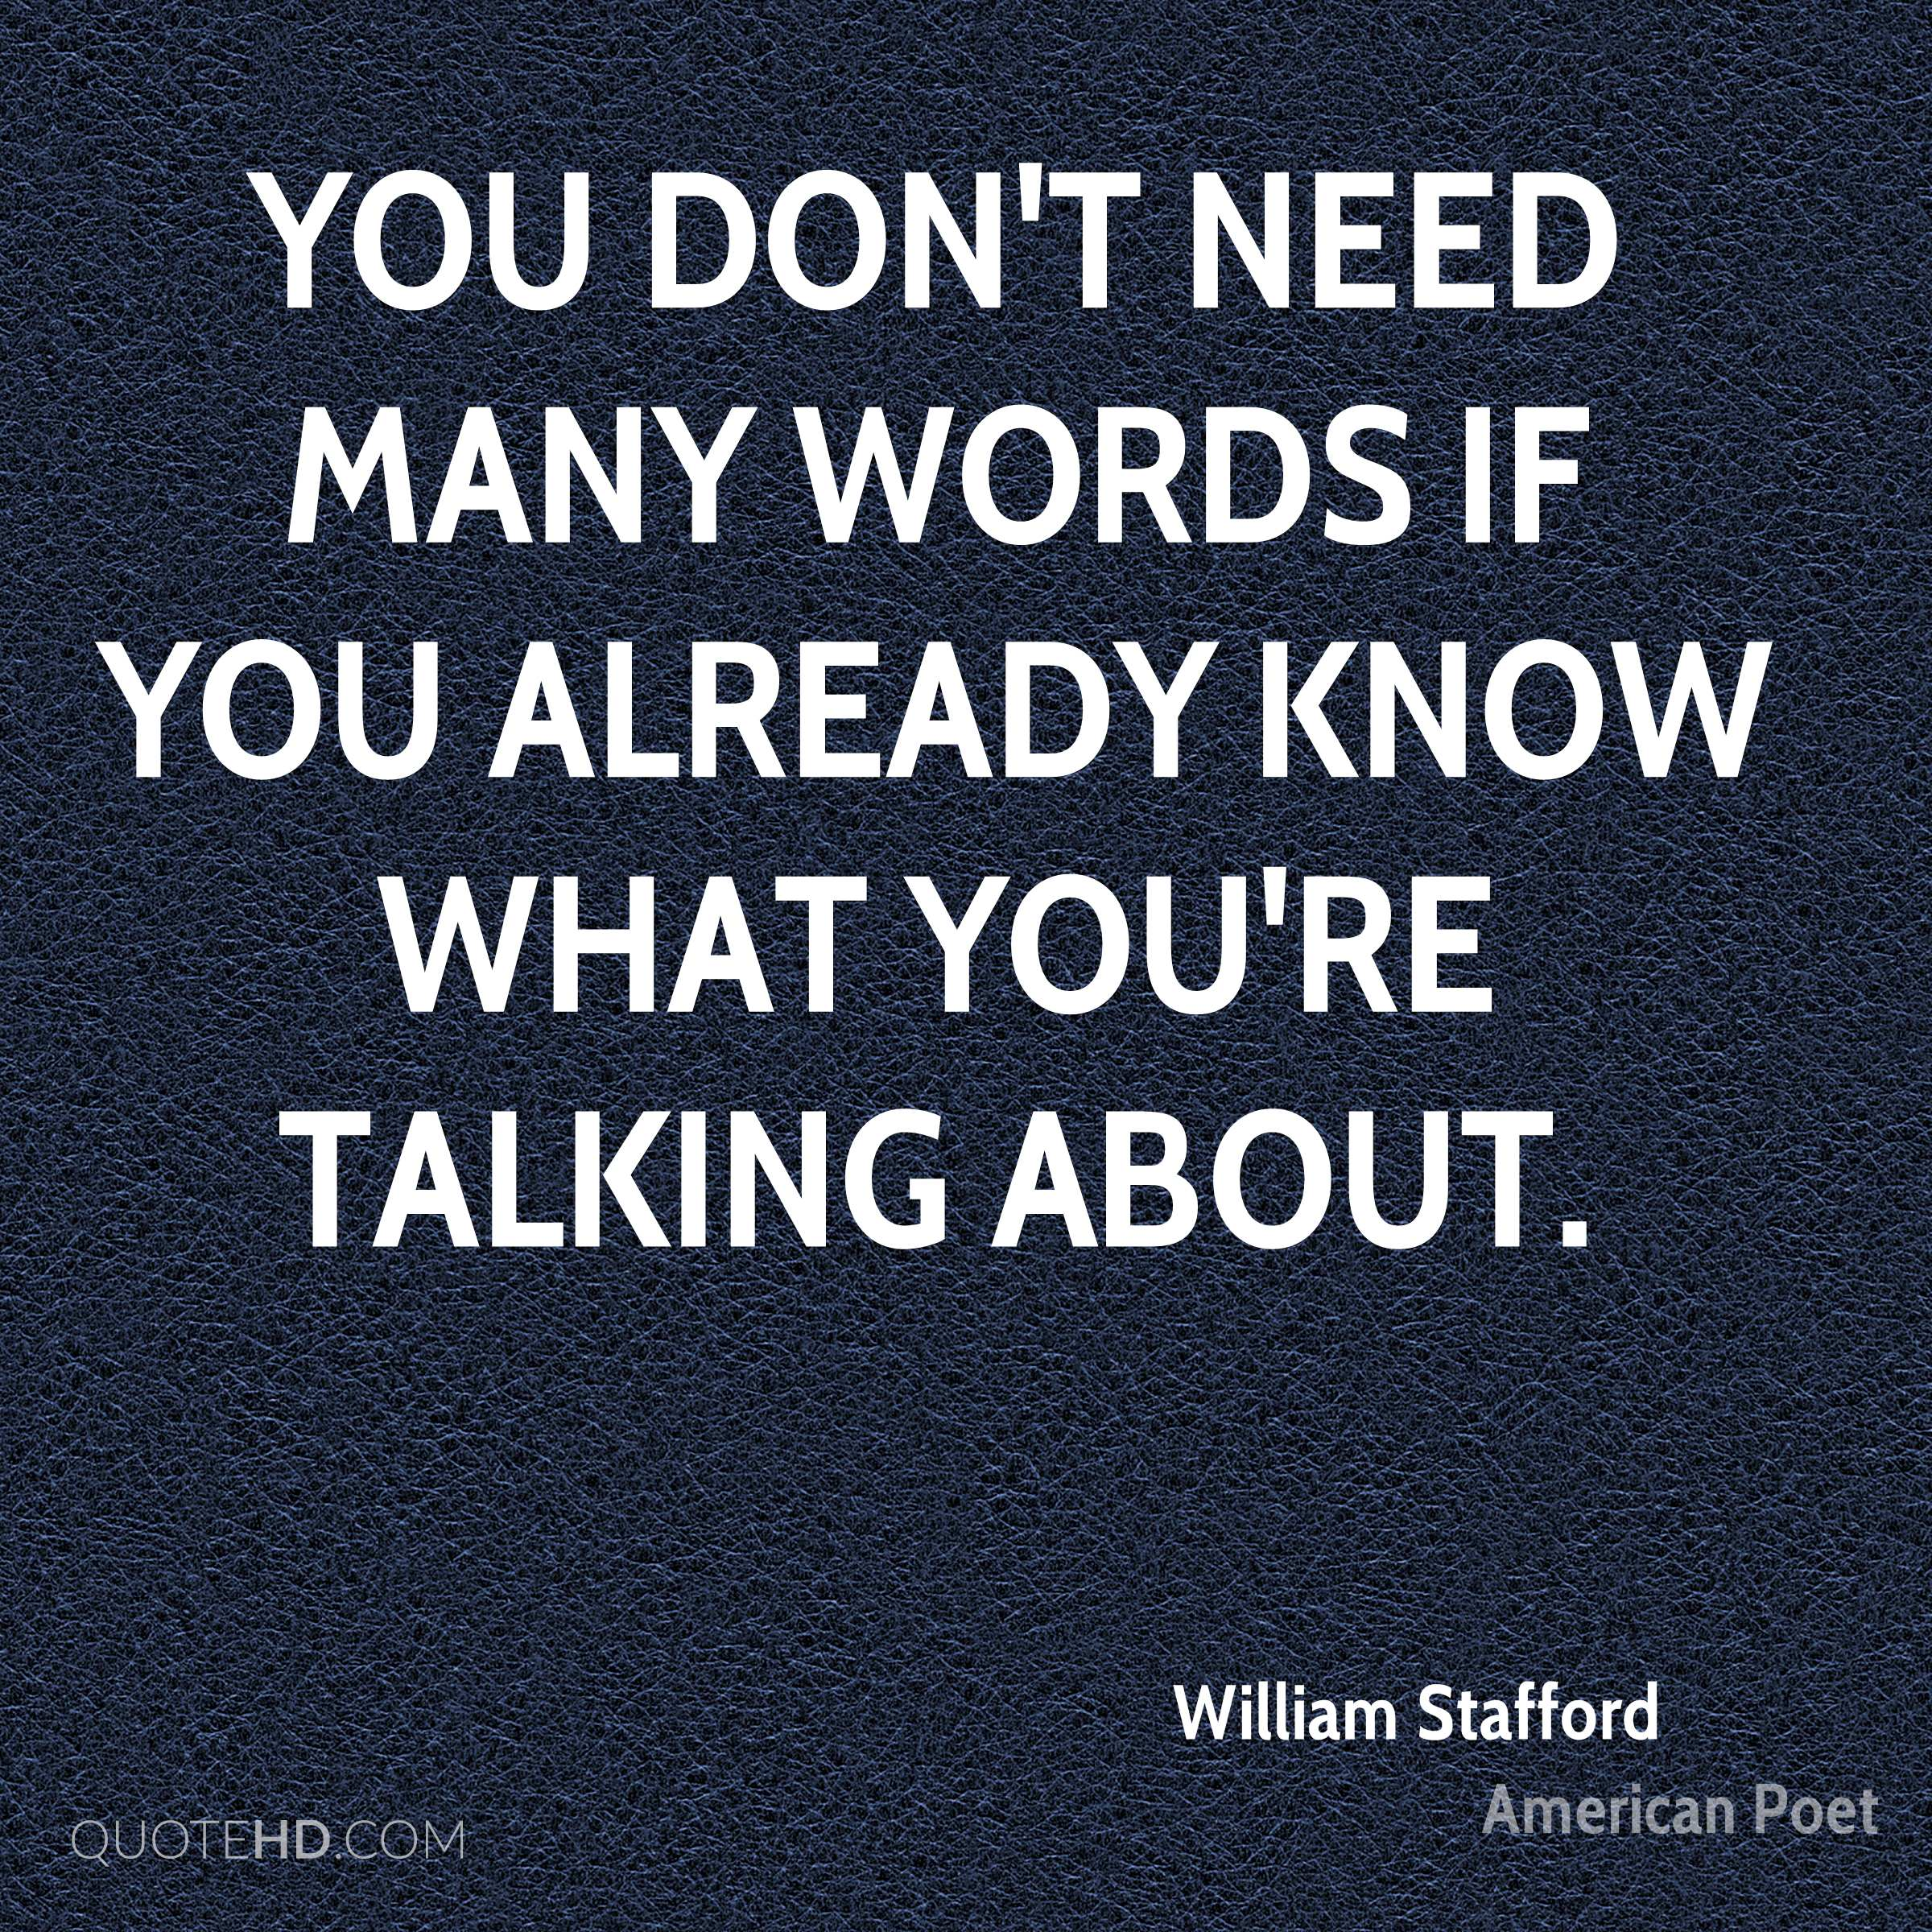 You don't need many words if you already know what you're talking about.